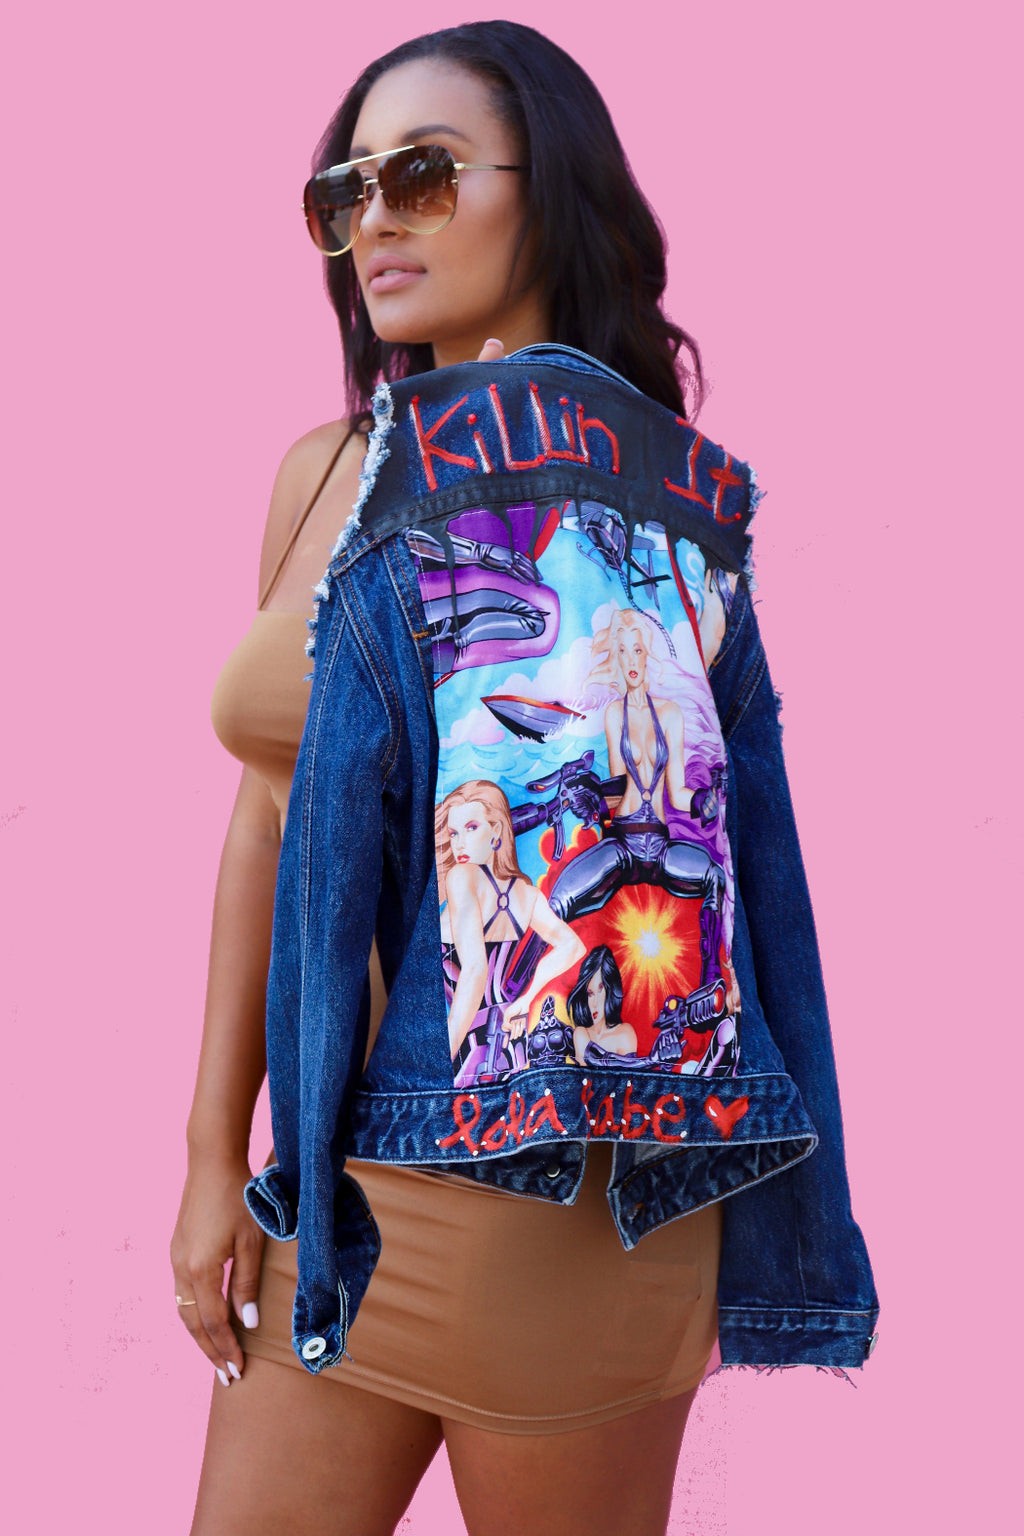 Killin' It Denim Jacket